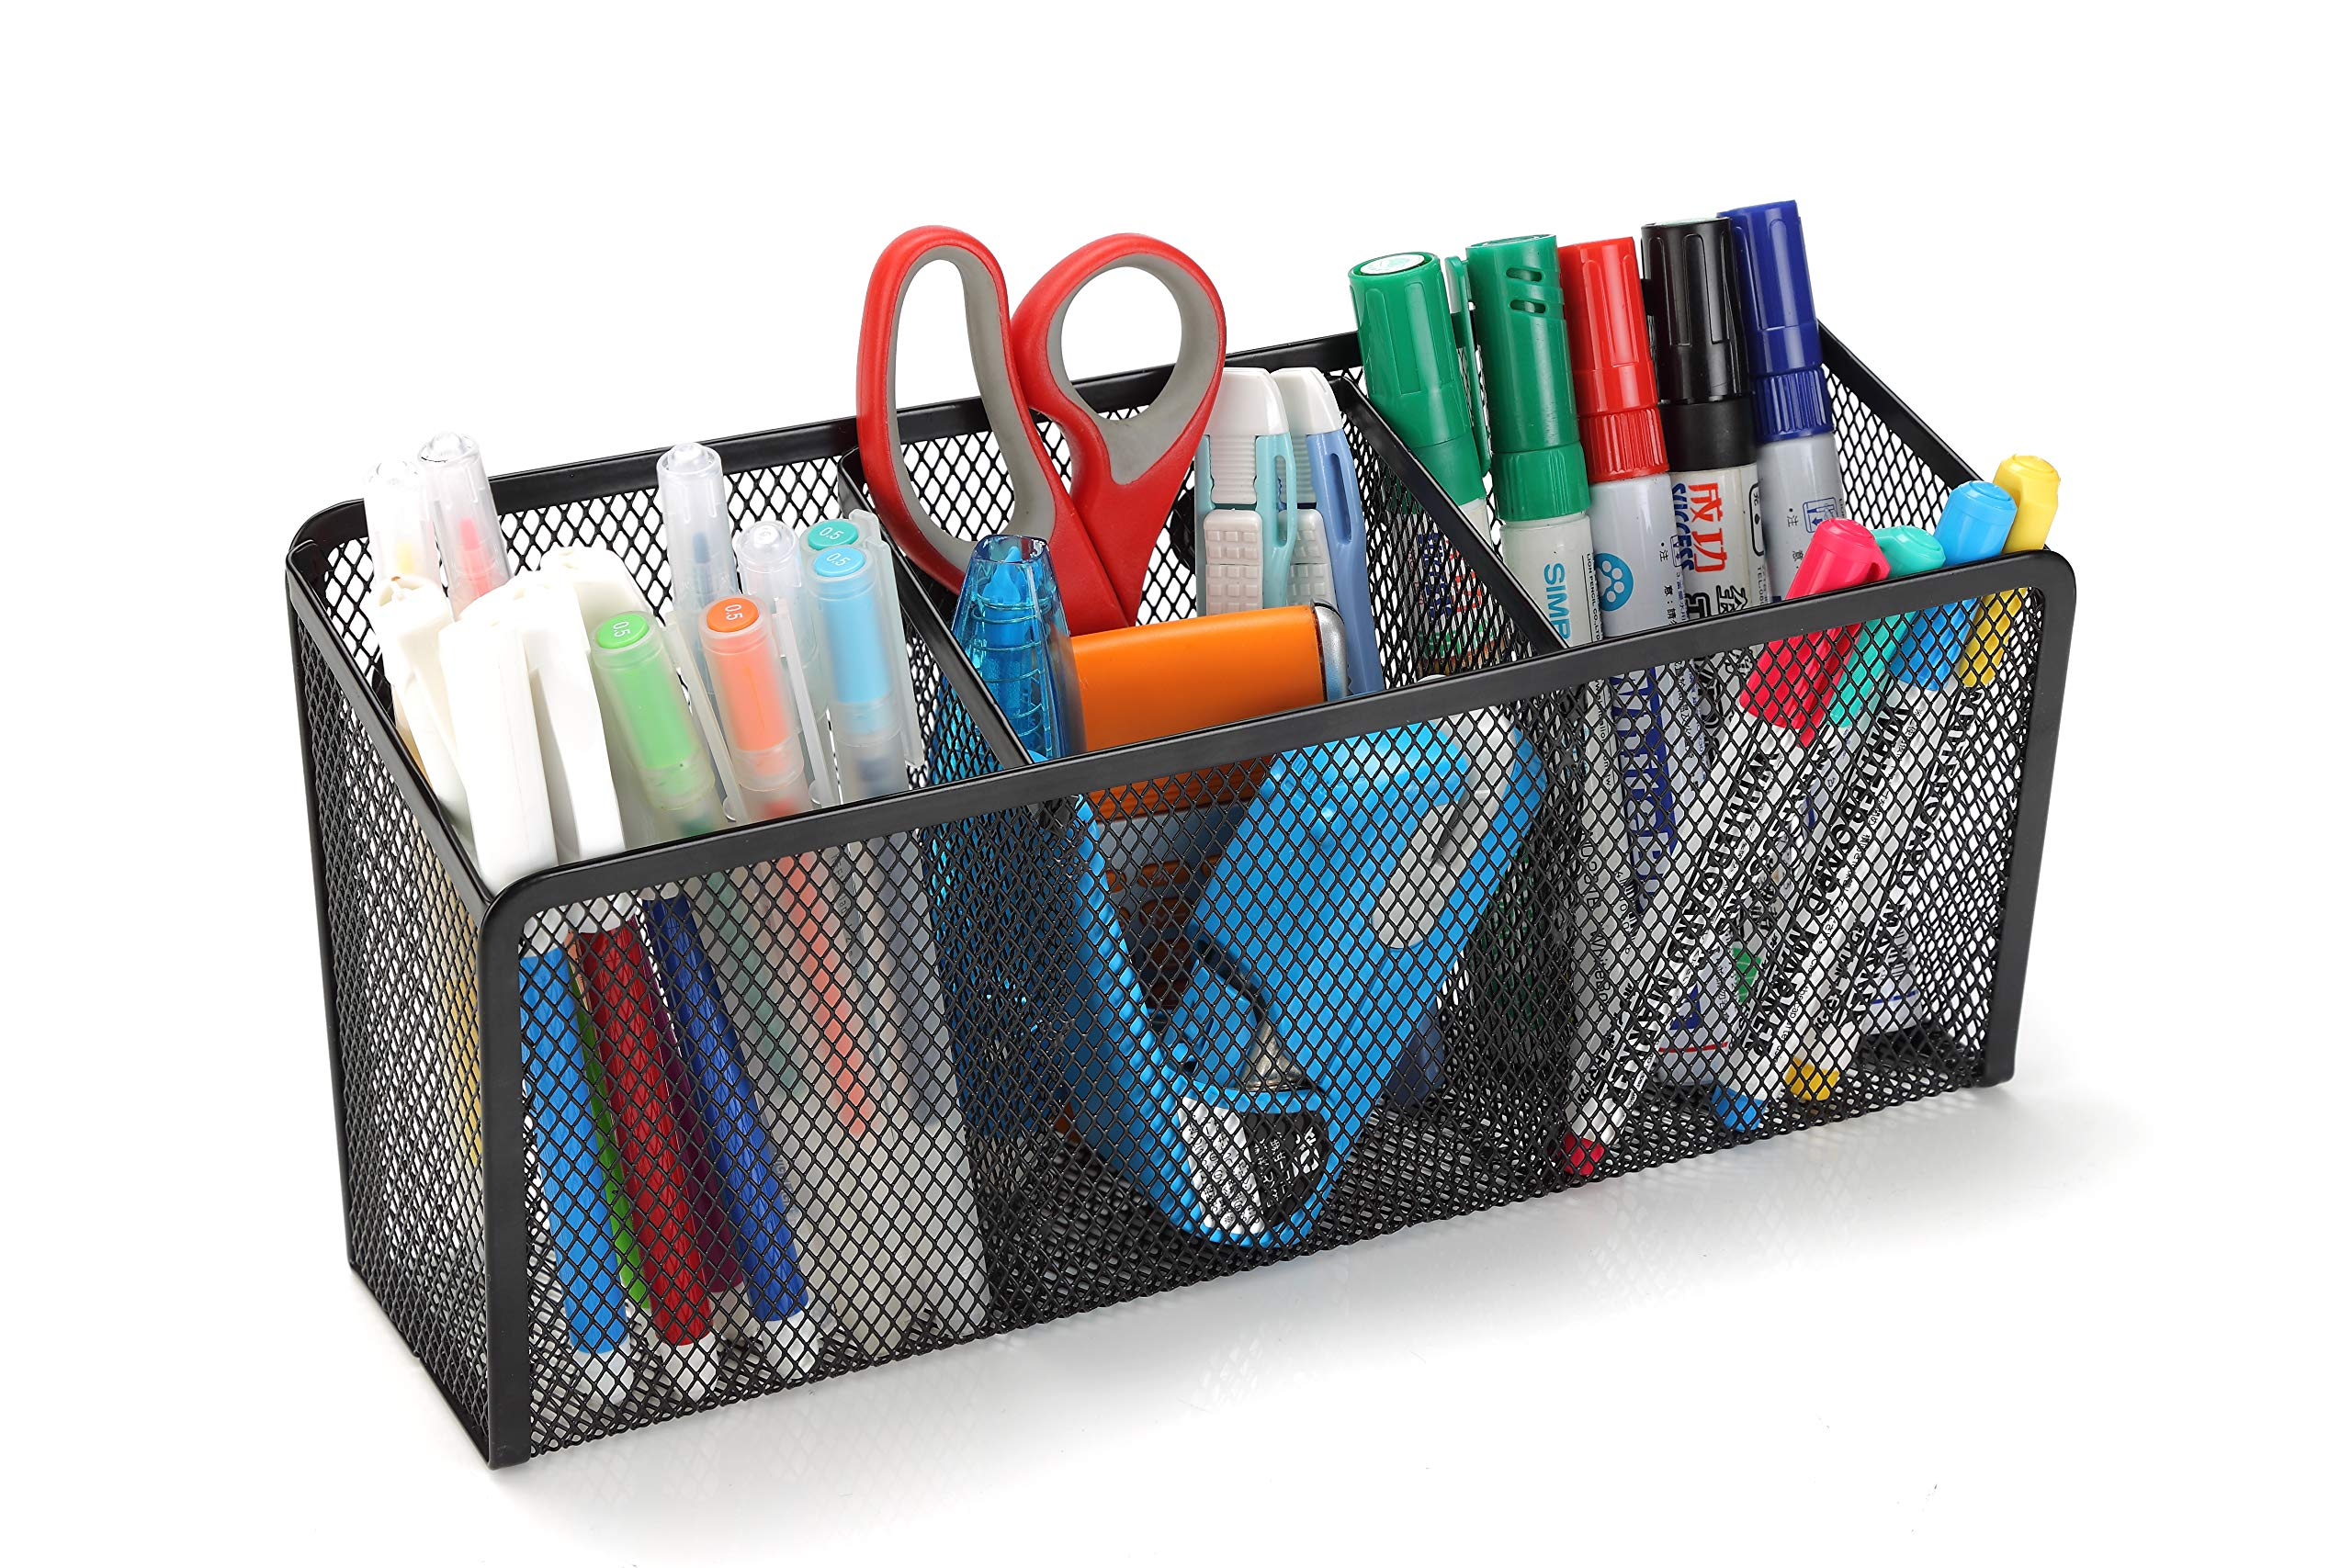 StorageMax Magnetic Pencil Holder and Locker Organizer, Wire Mesh Storage Basket for Refrigerator, Whiteboard or Office Cabinet. Extra Strong Magnets. Office Accessories (Black, 3 Compartment)